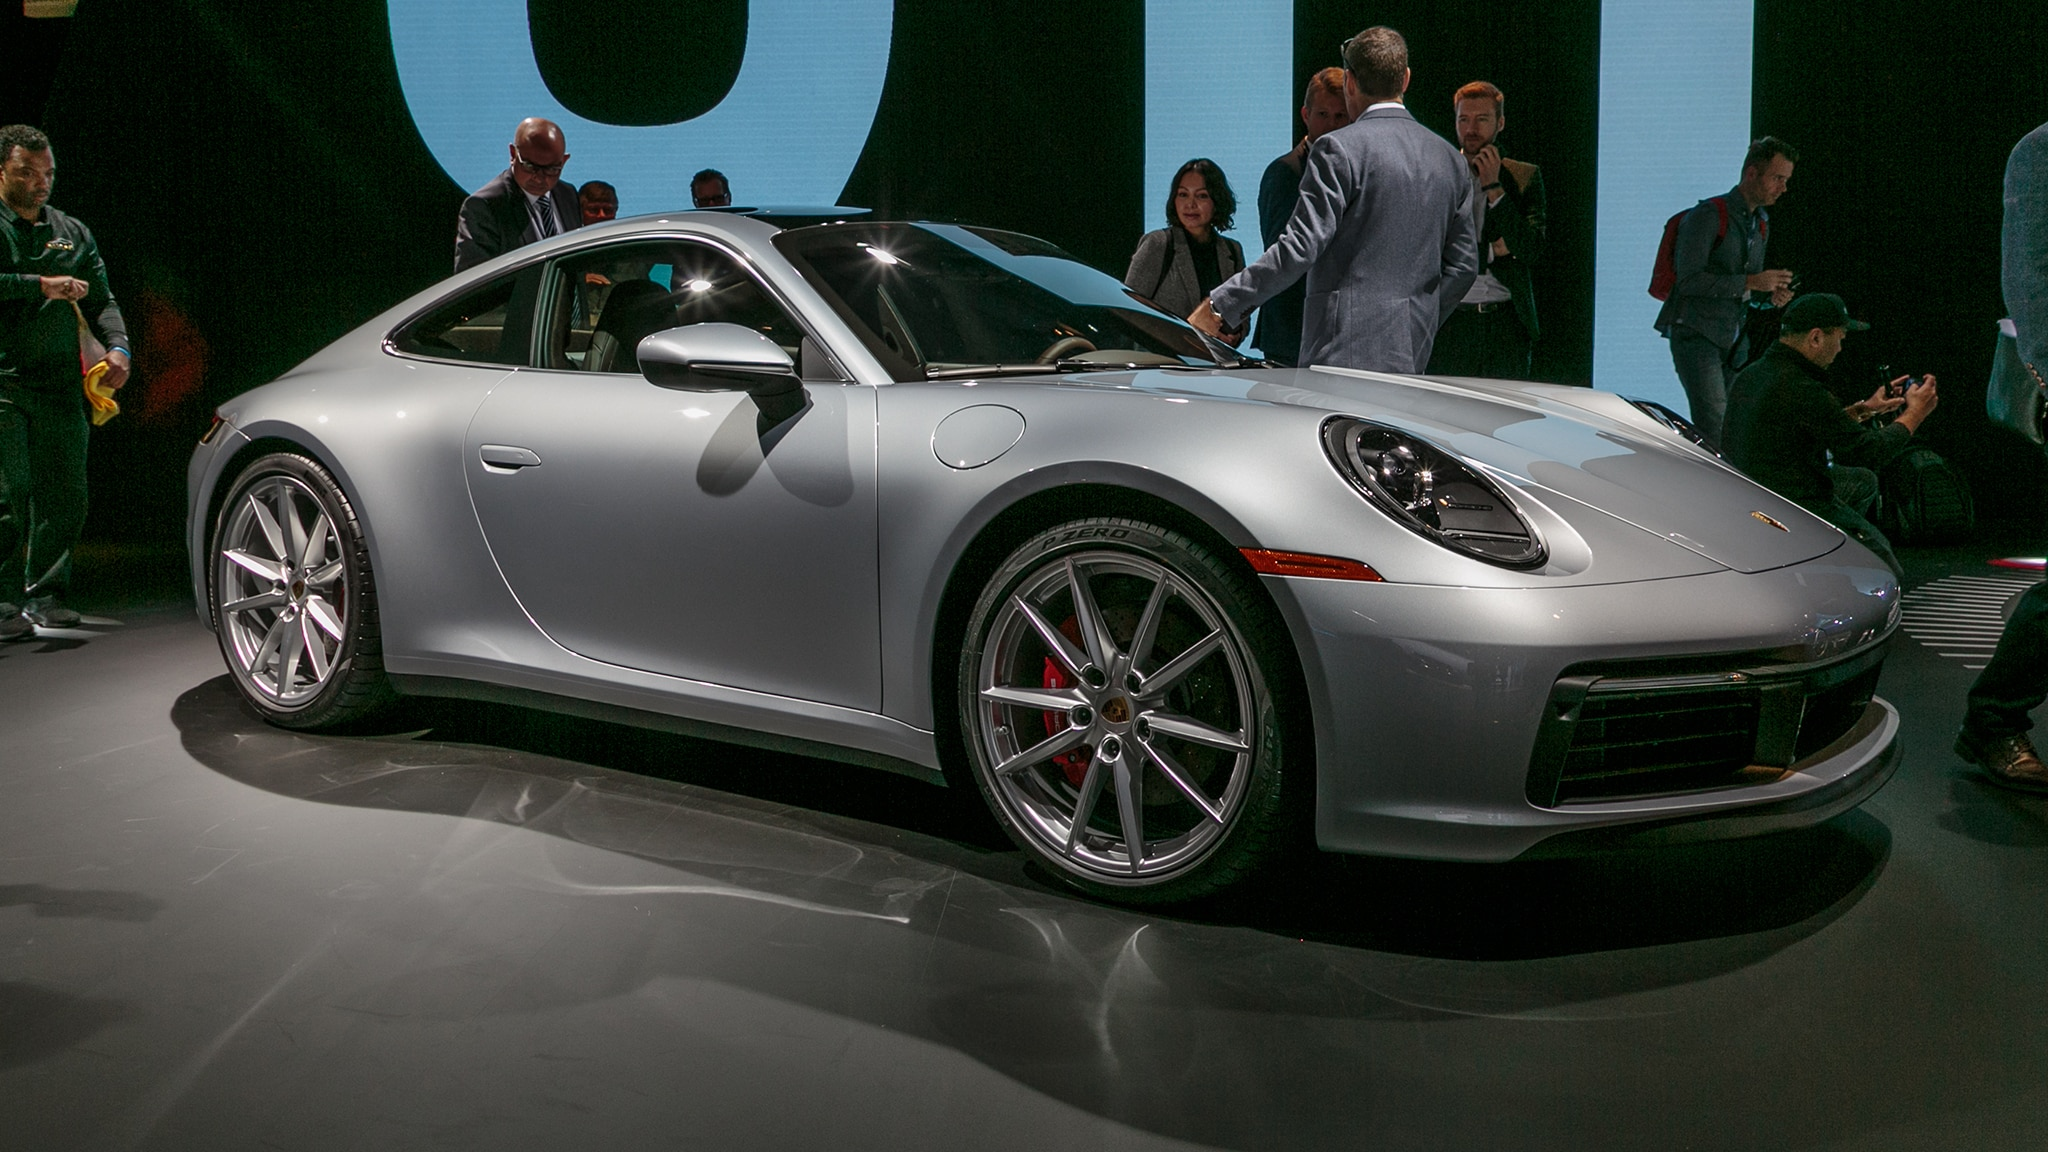 2020 Porsche 911 All About The All New 992 Generation Automobile